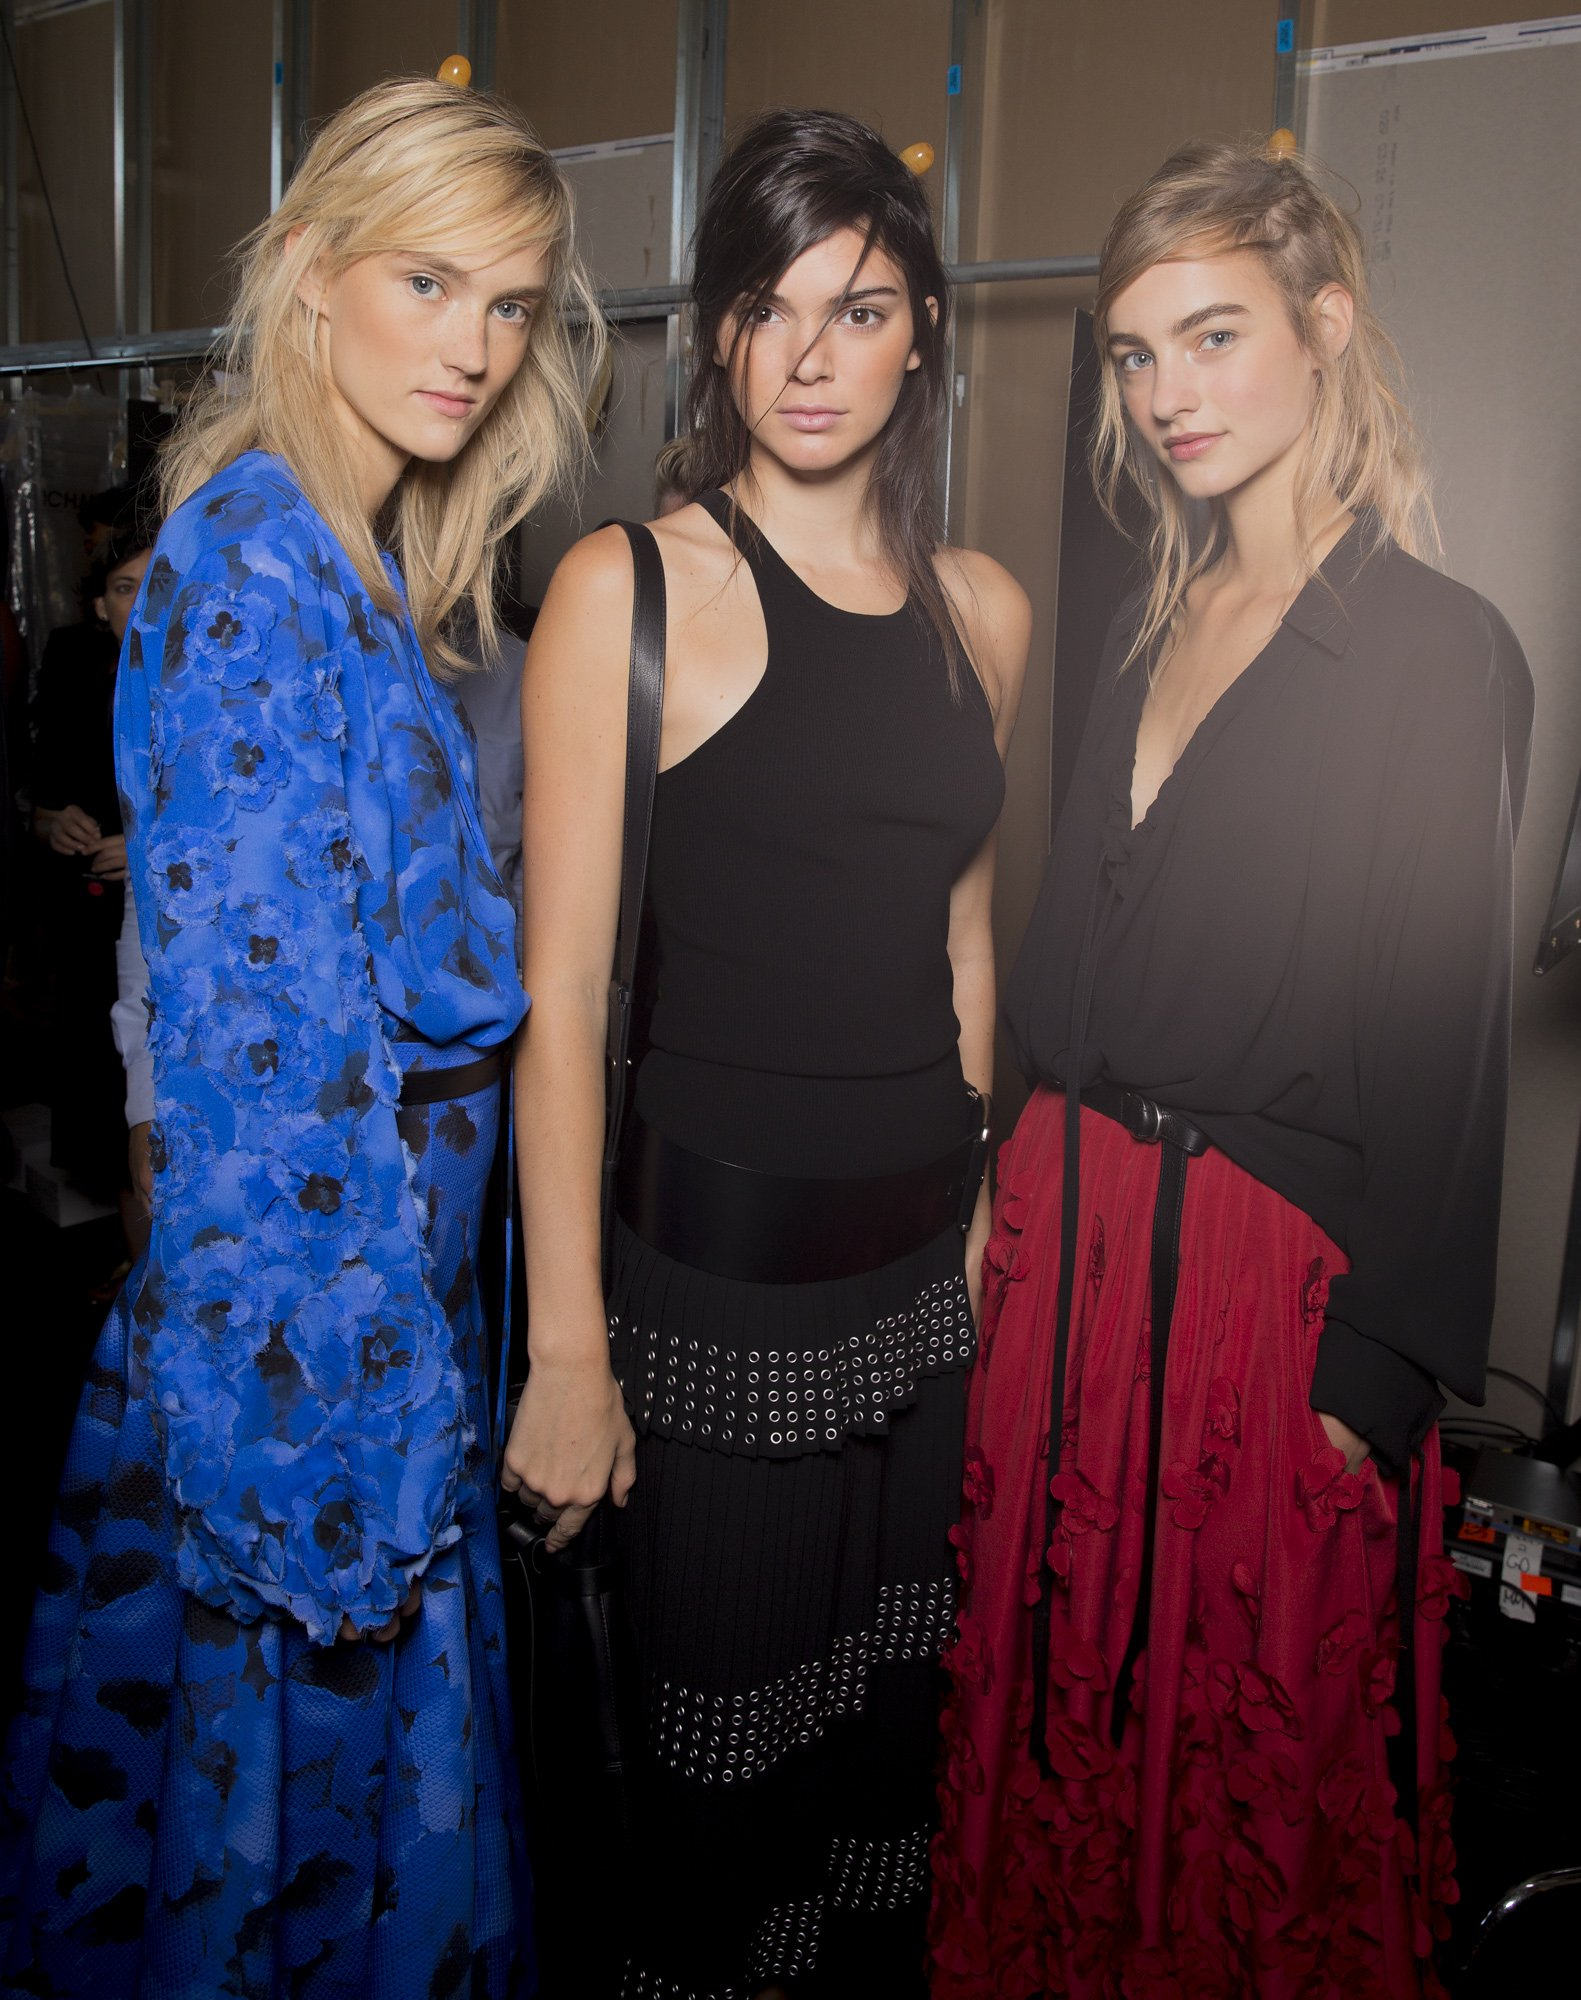 Above: Two different sides of fashion: models Maartje Verhoef and Harleth Kuusik with Instagram Celebrity and reality TV star Kendall Jenner.